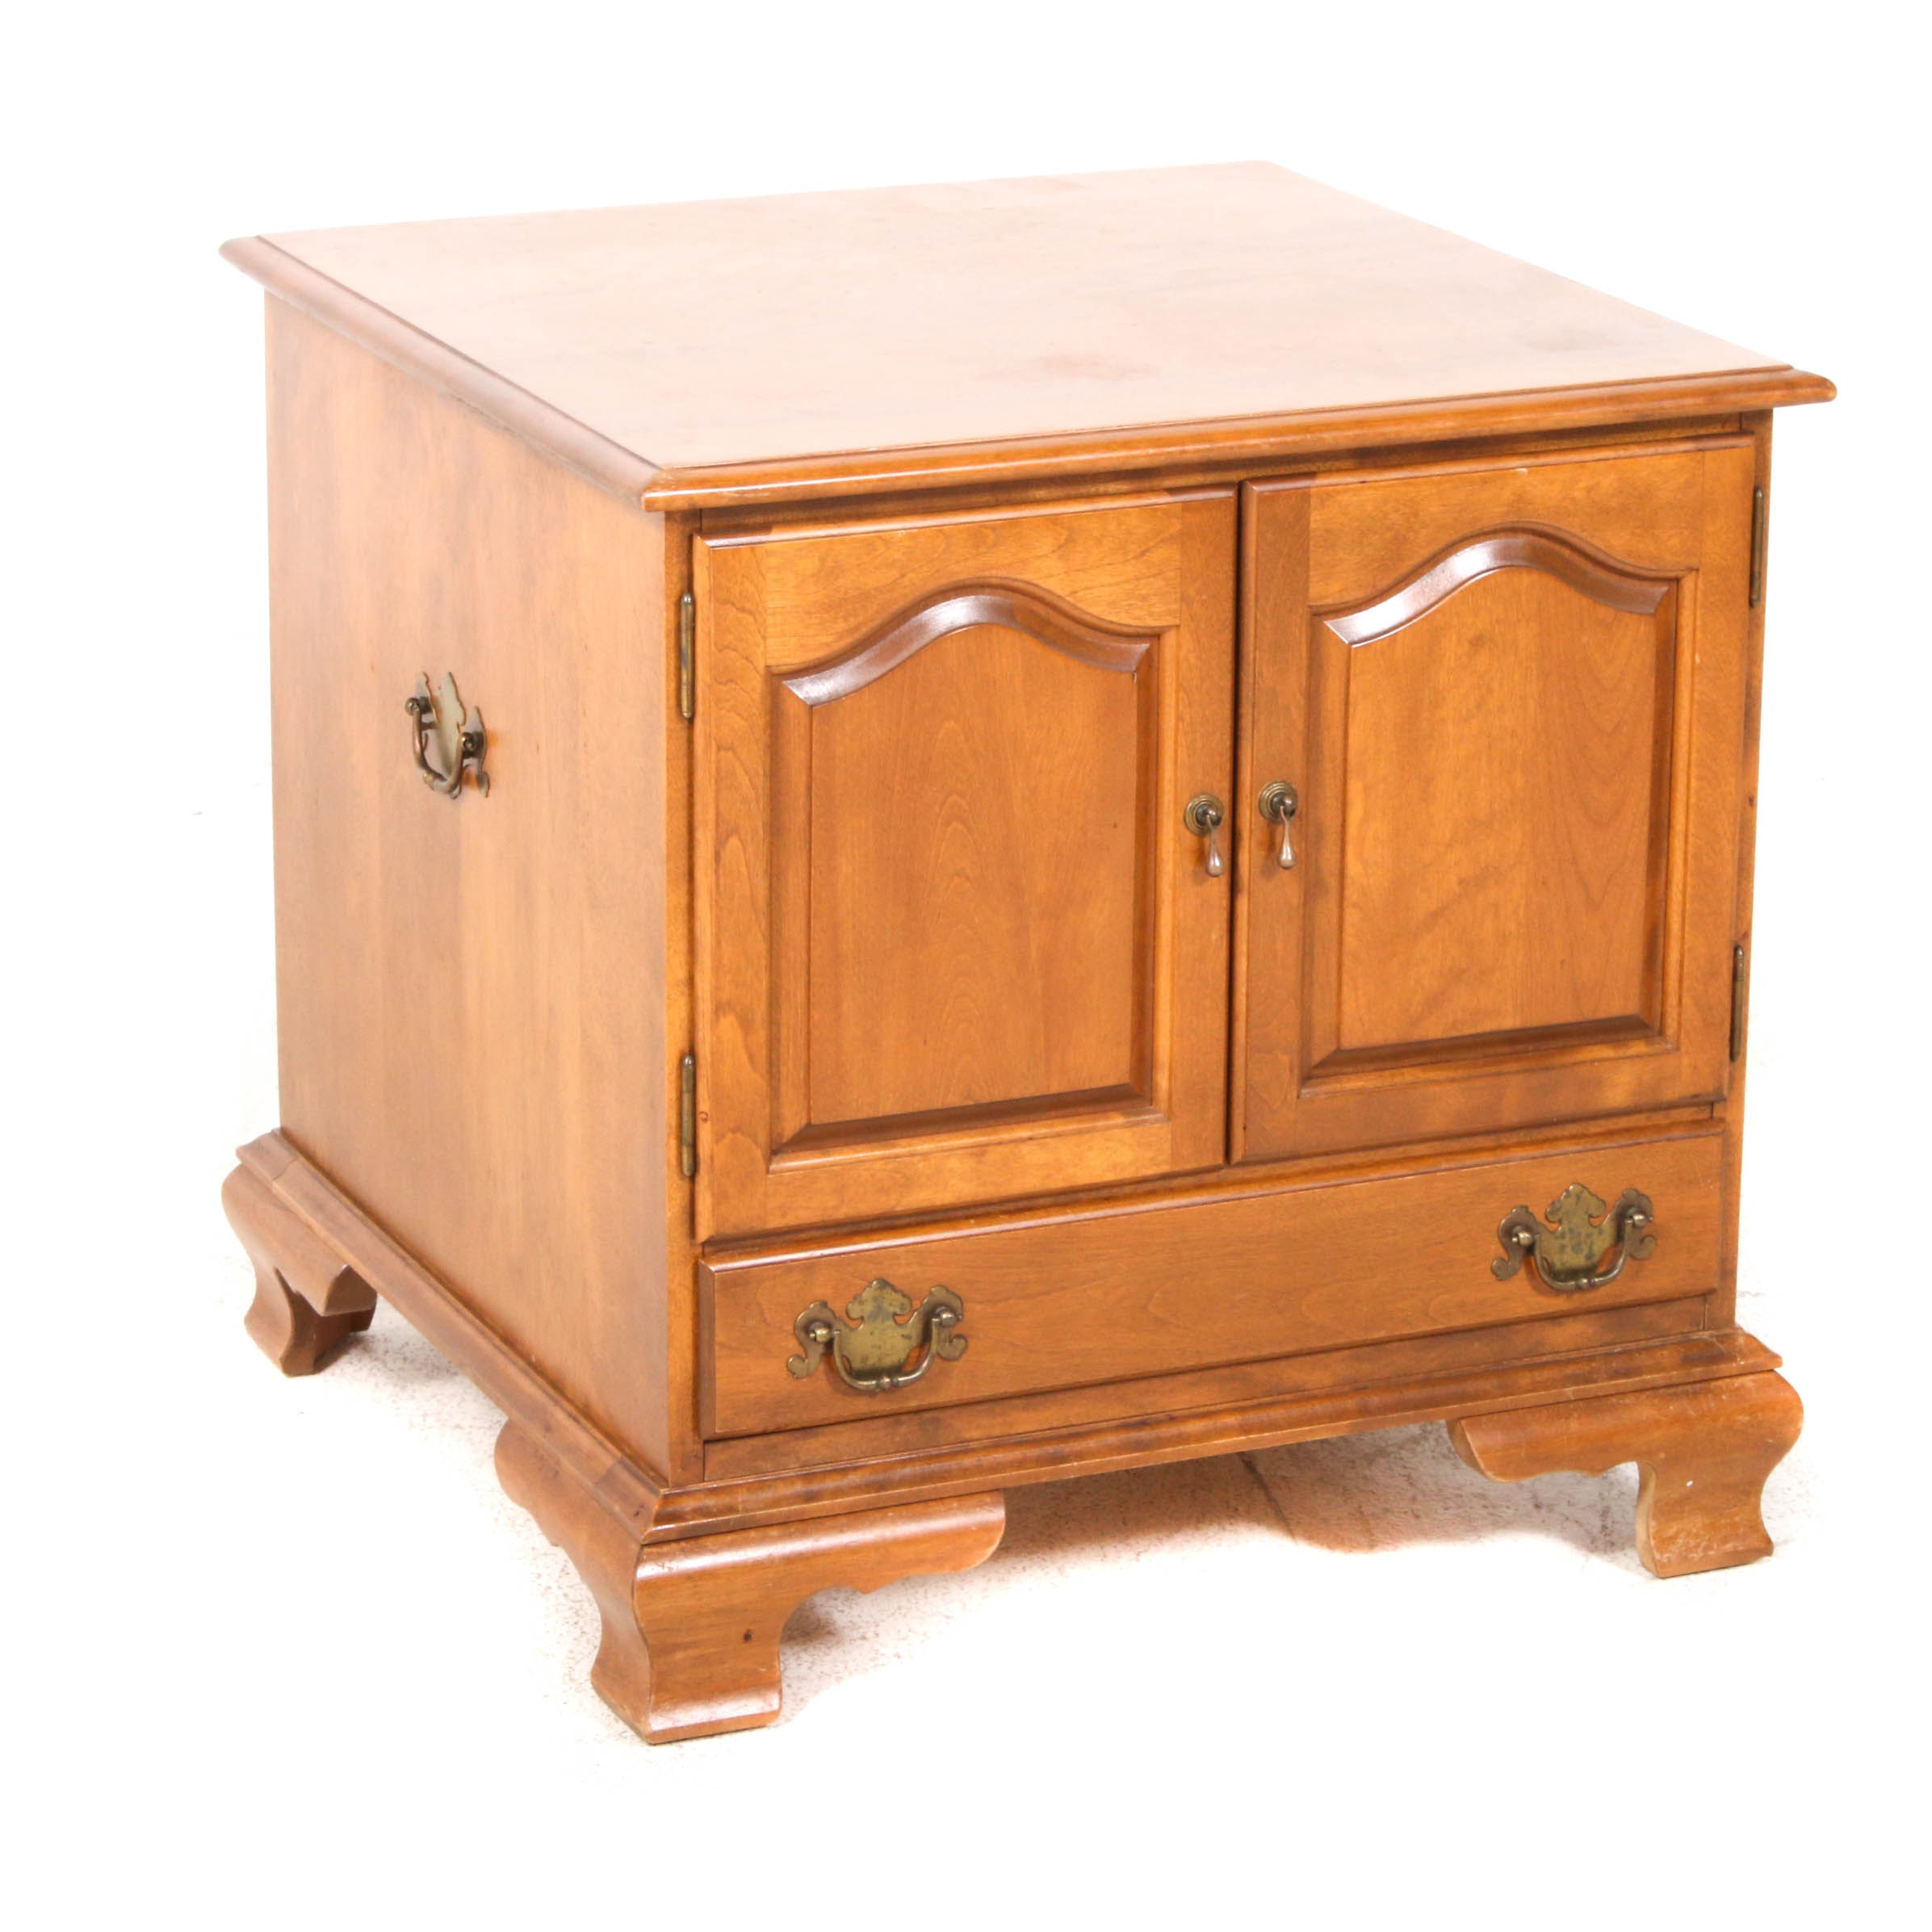 Ethan Allen Early American Style Maple and Birch Side Table, Late 20th Century